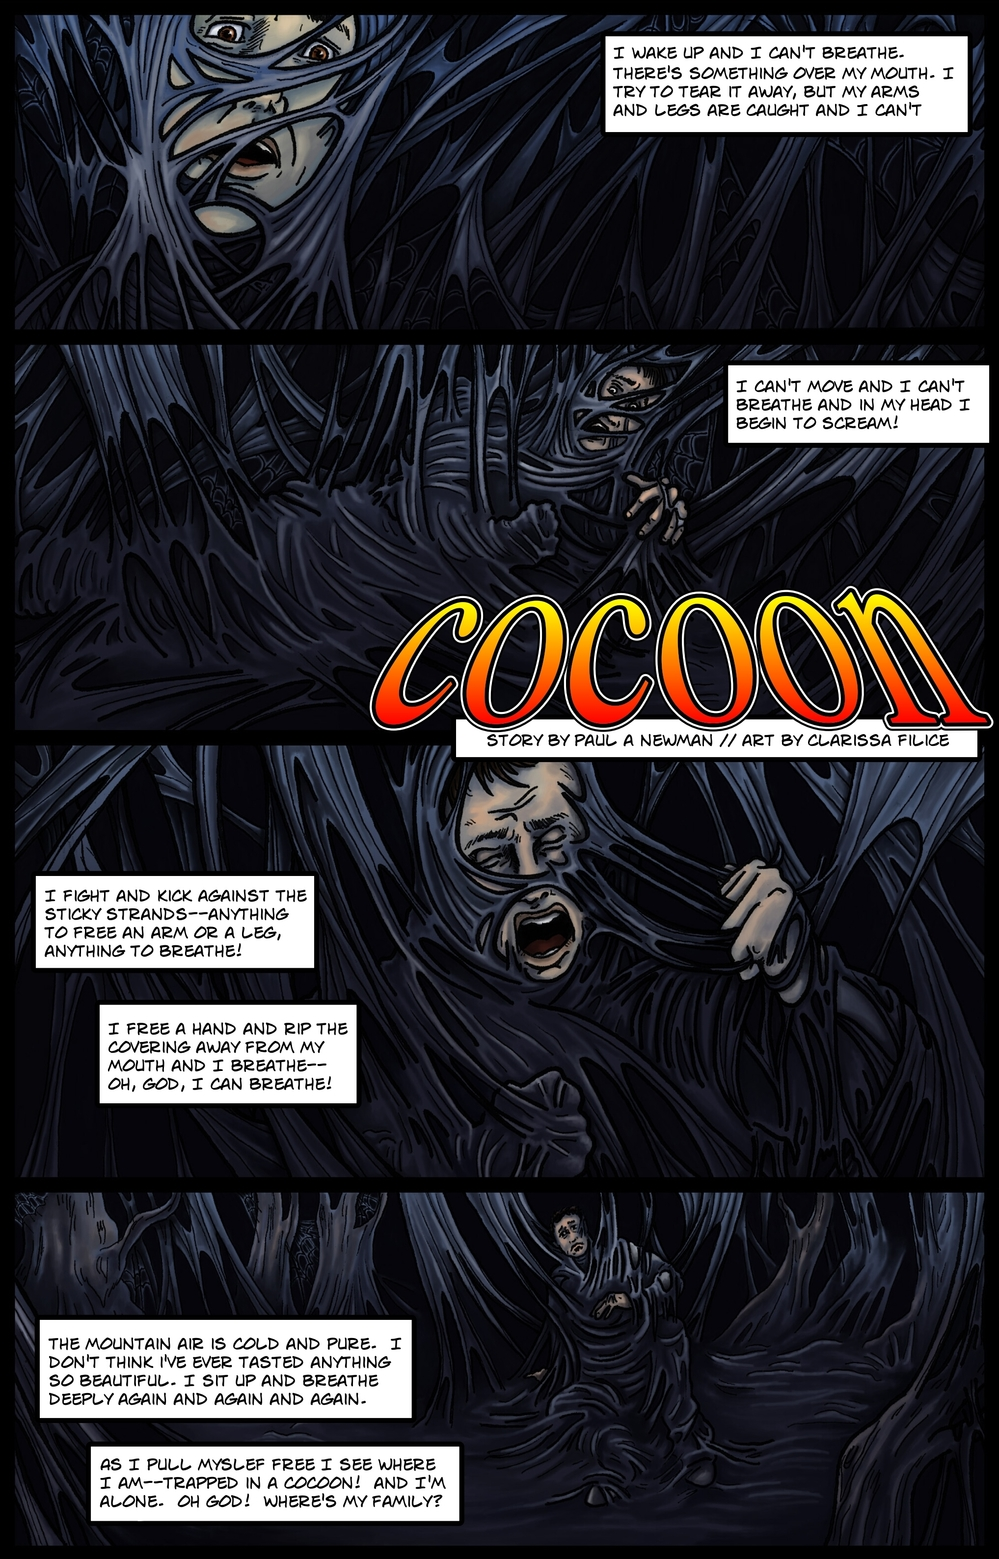 COCOON page 1 - story 9 in The Book of Lies